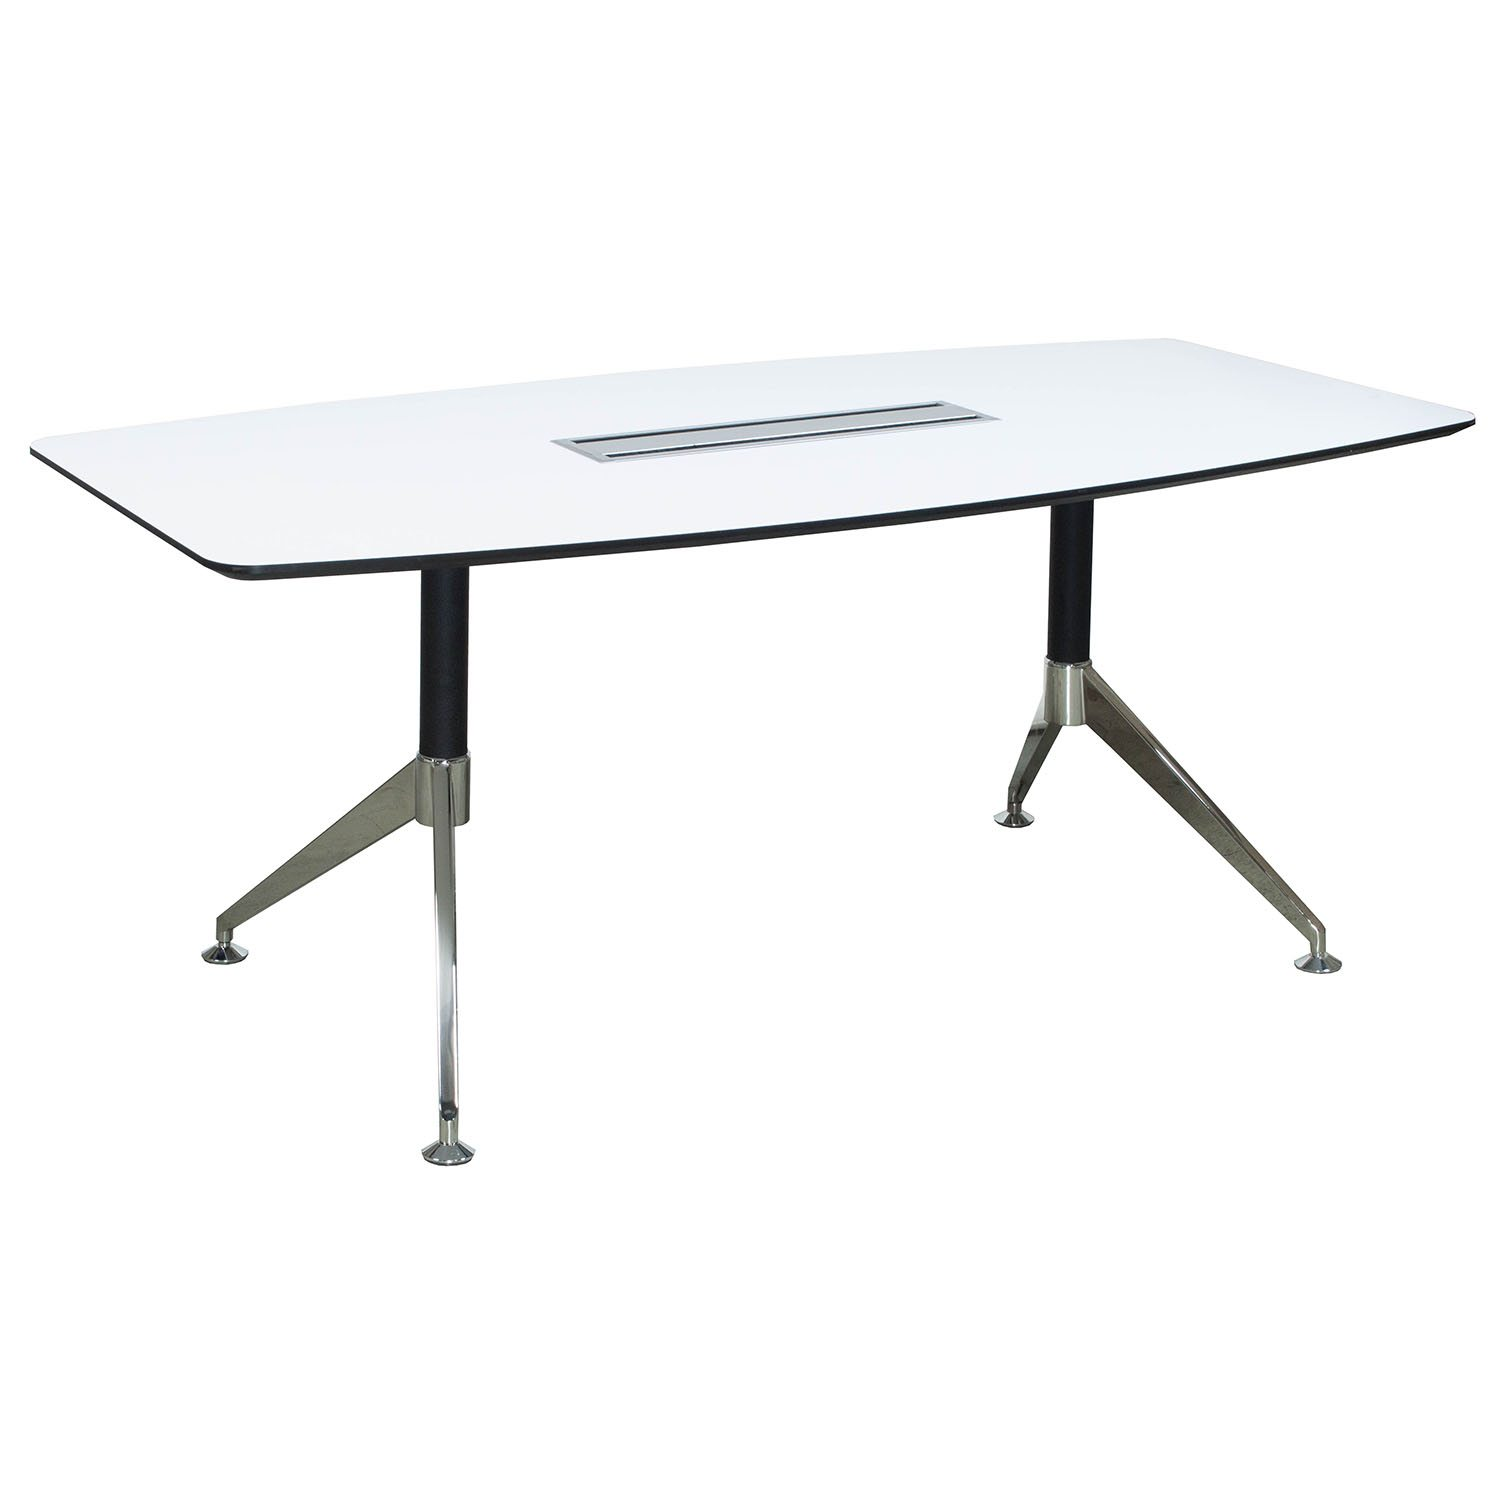 Morgan 8 Foot Melamine Boat Shaped Conference Table White